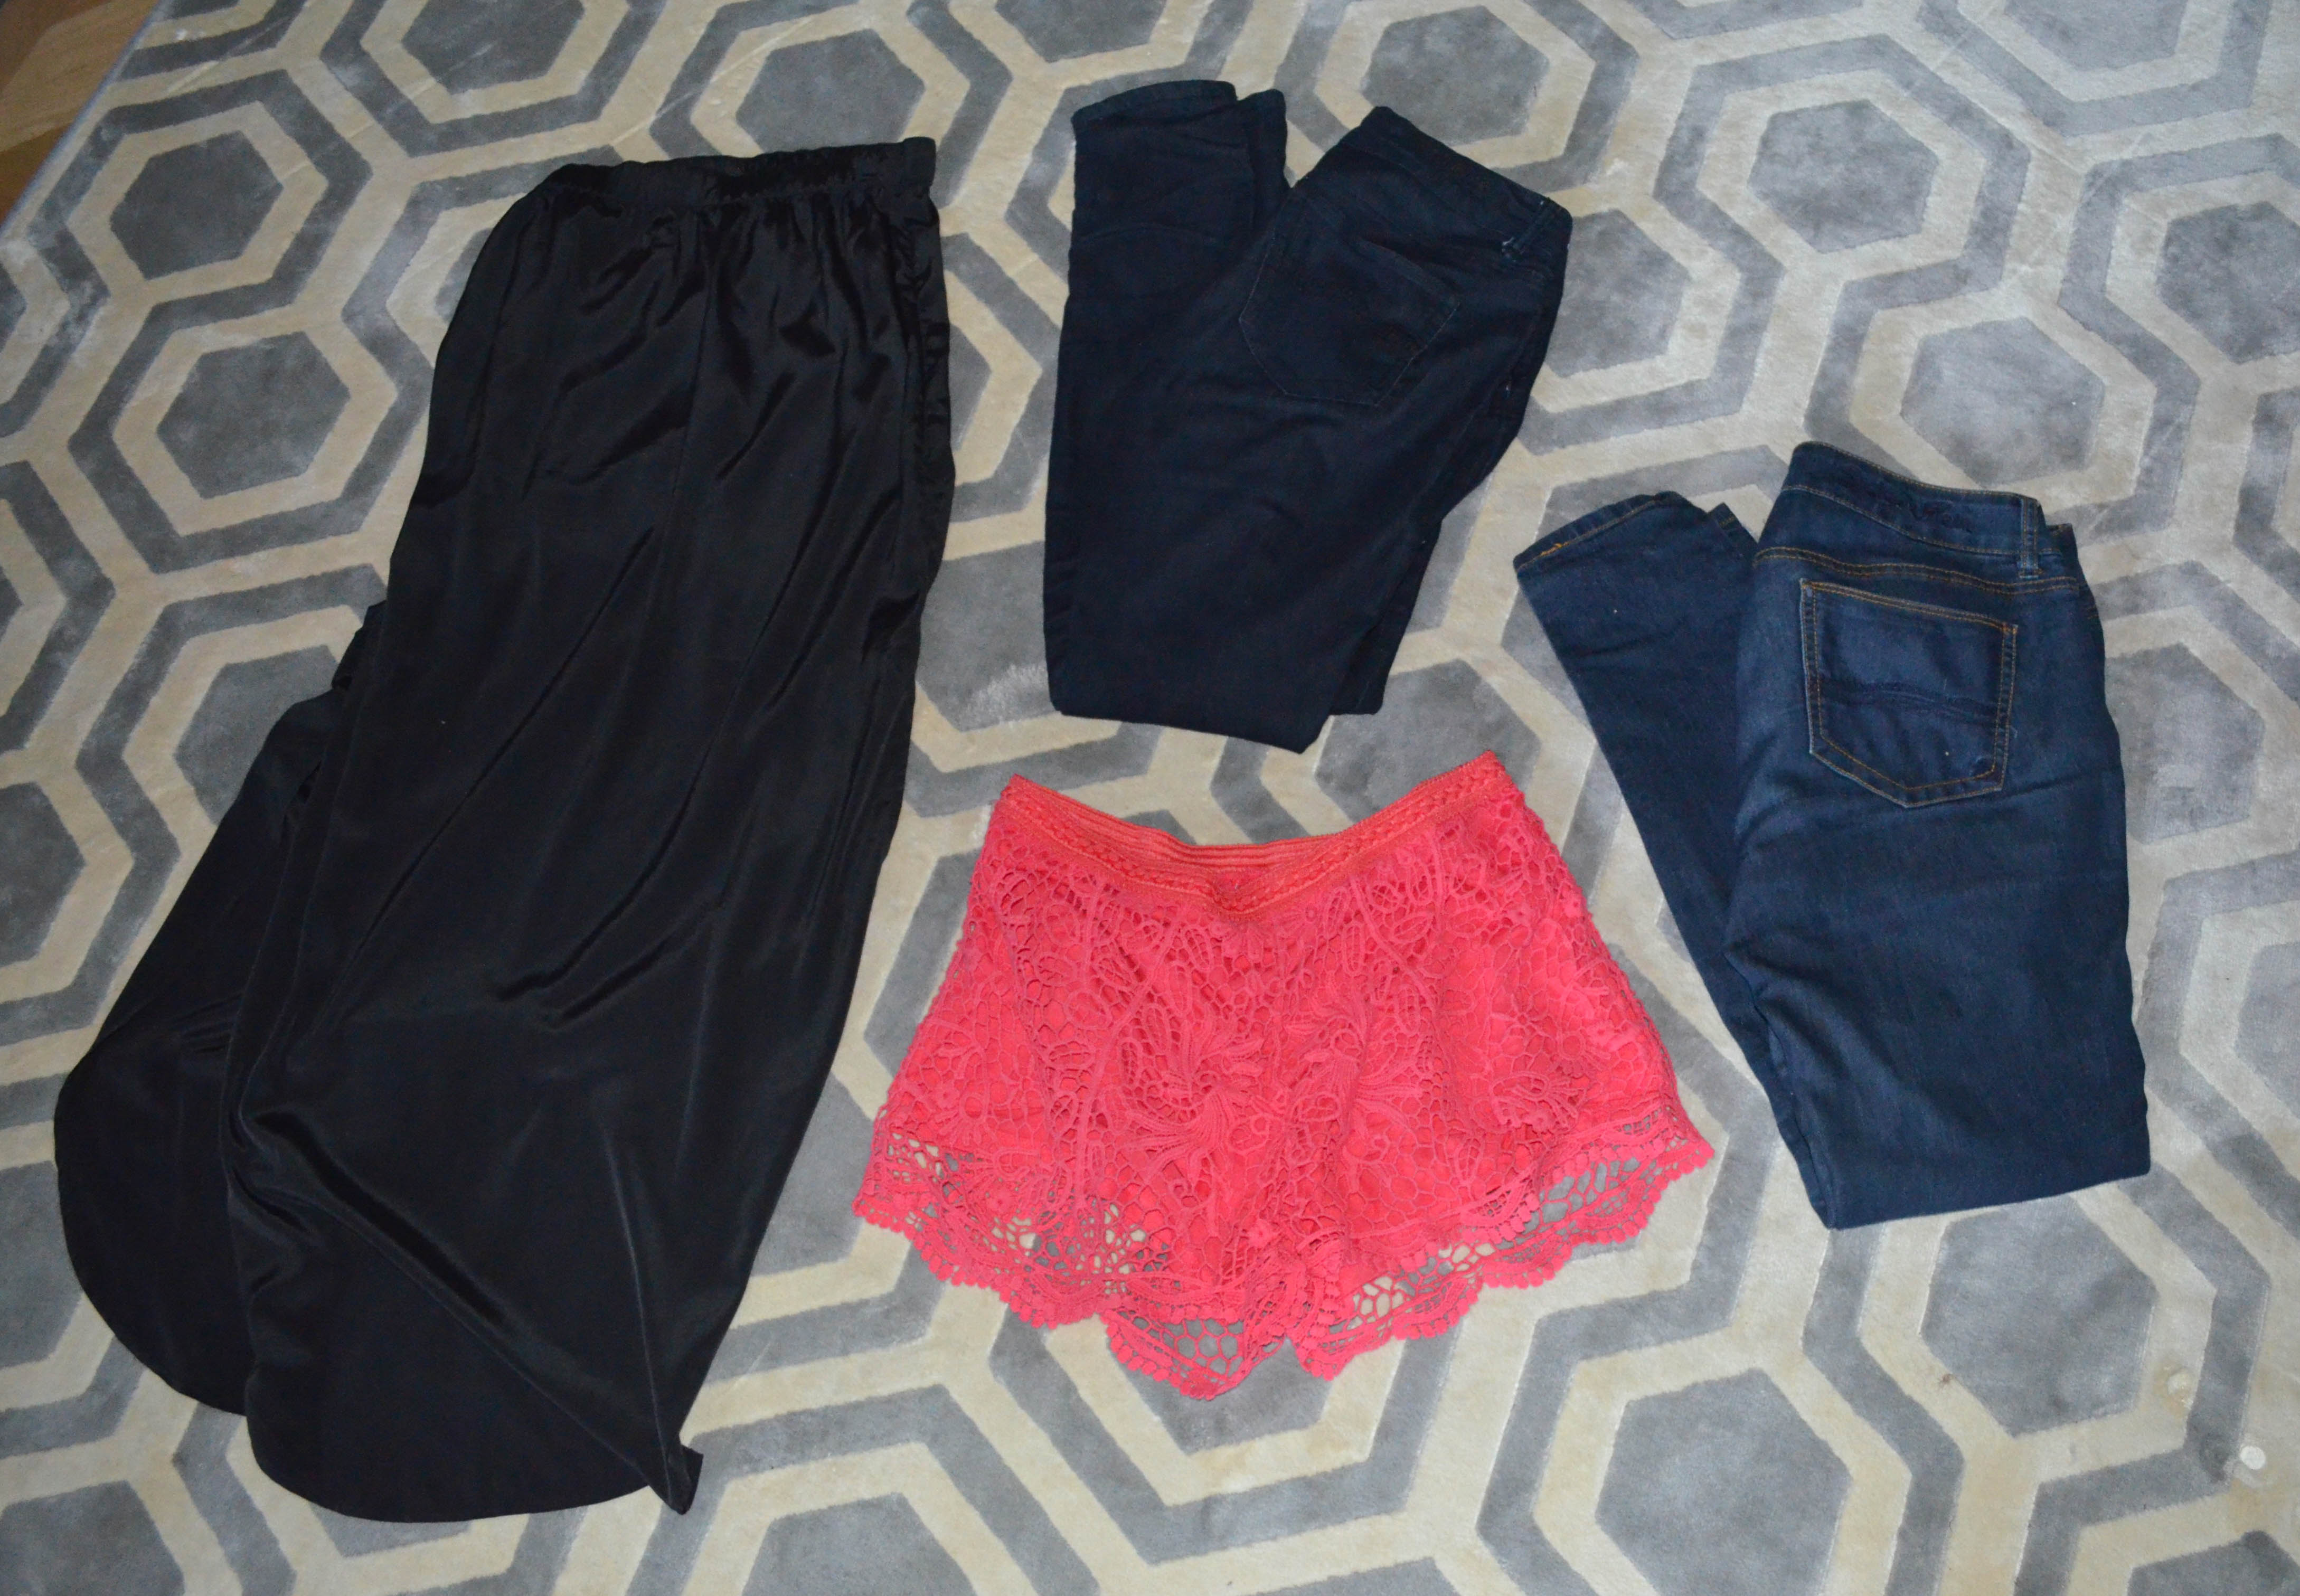 What I Packed: Bottoms